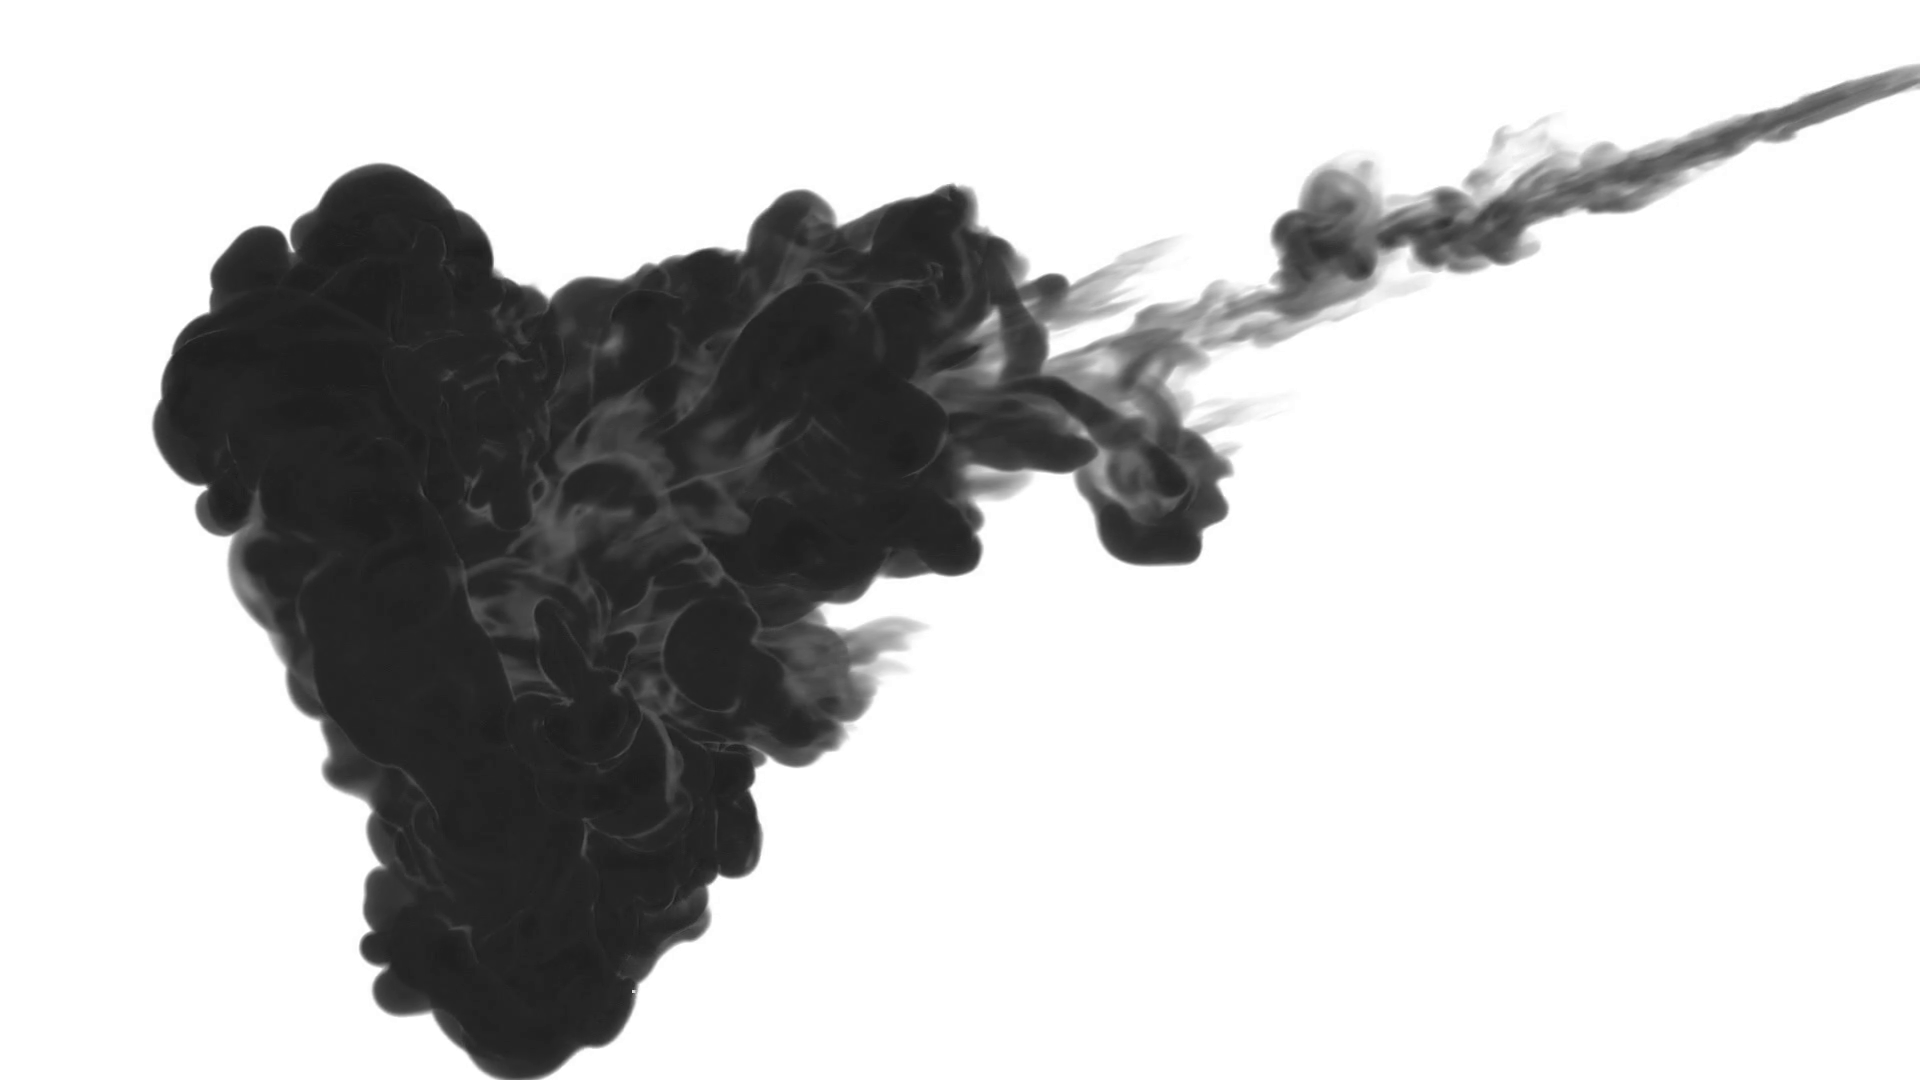 INK BACKGROUND FOR COMPOSITING. BLACK SMOKE or INK IN WATER SERIES ...